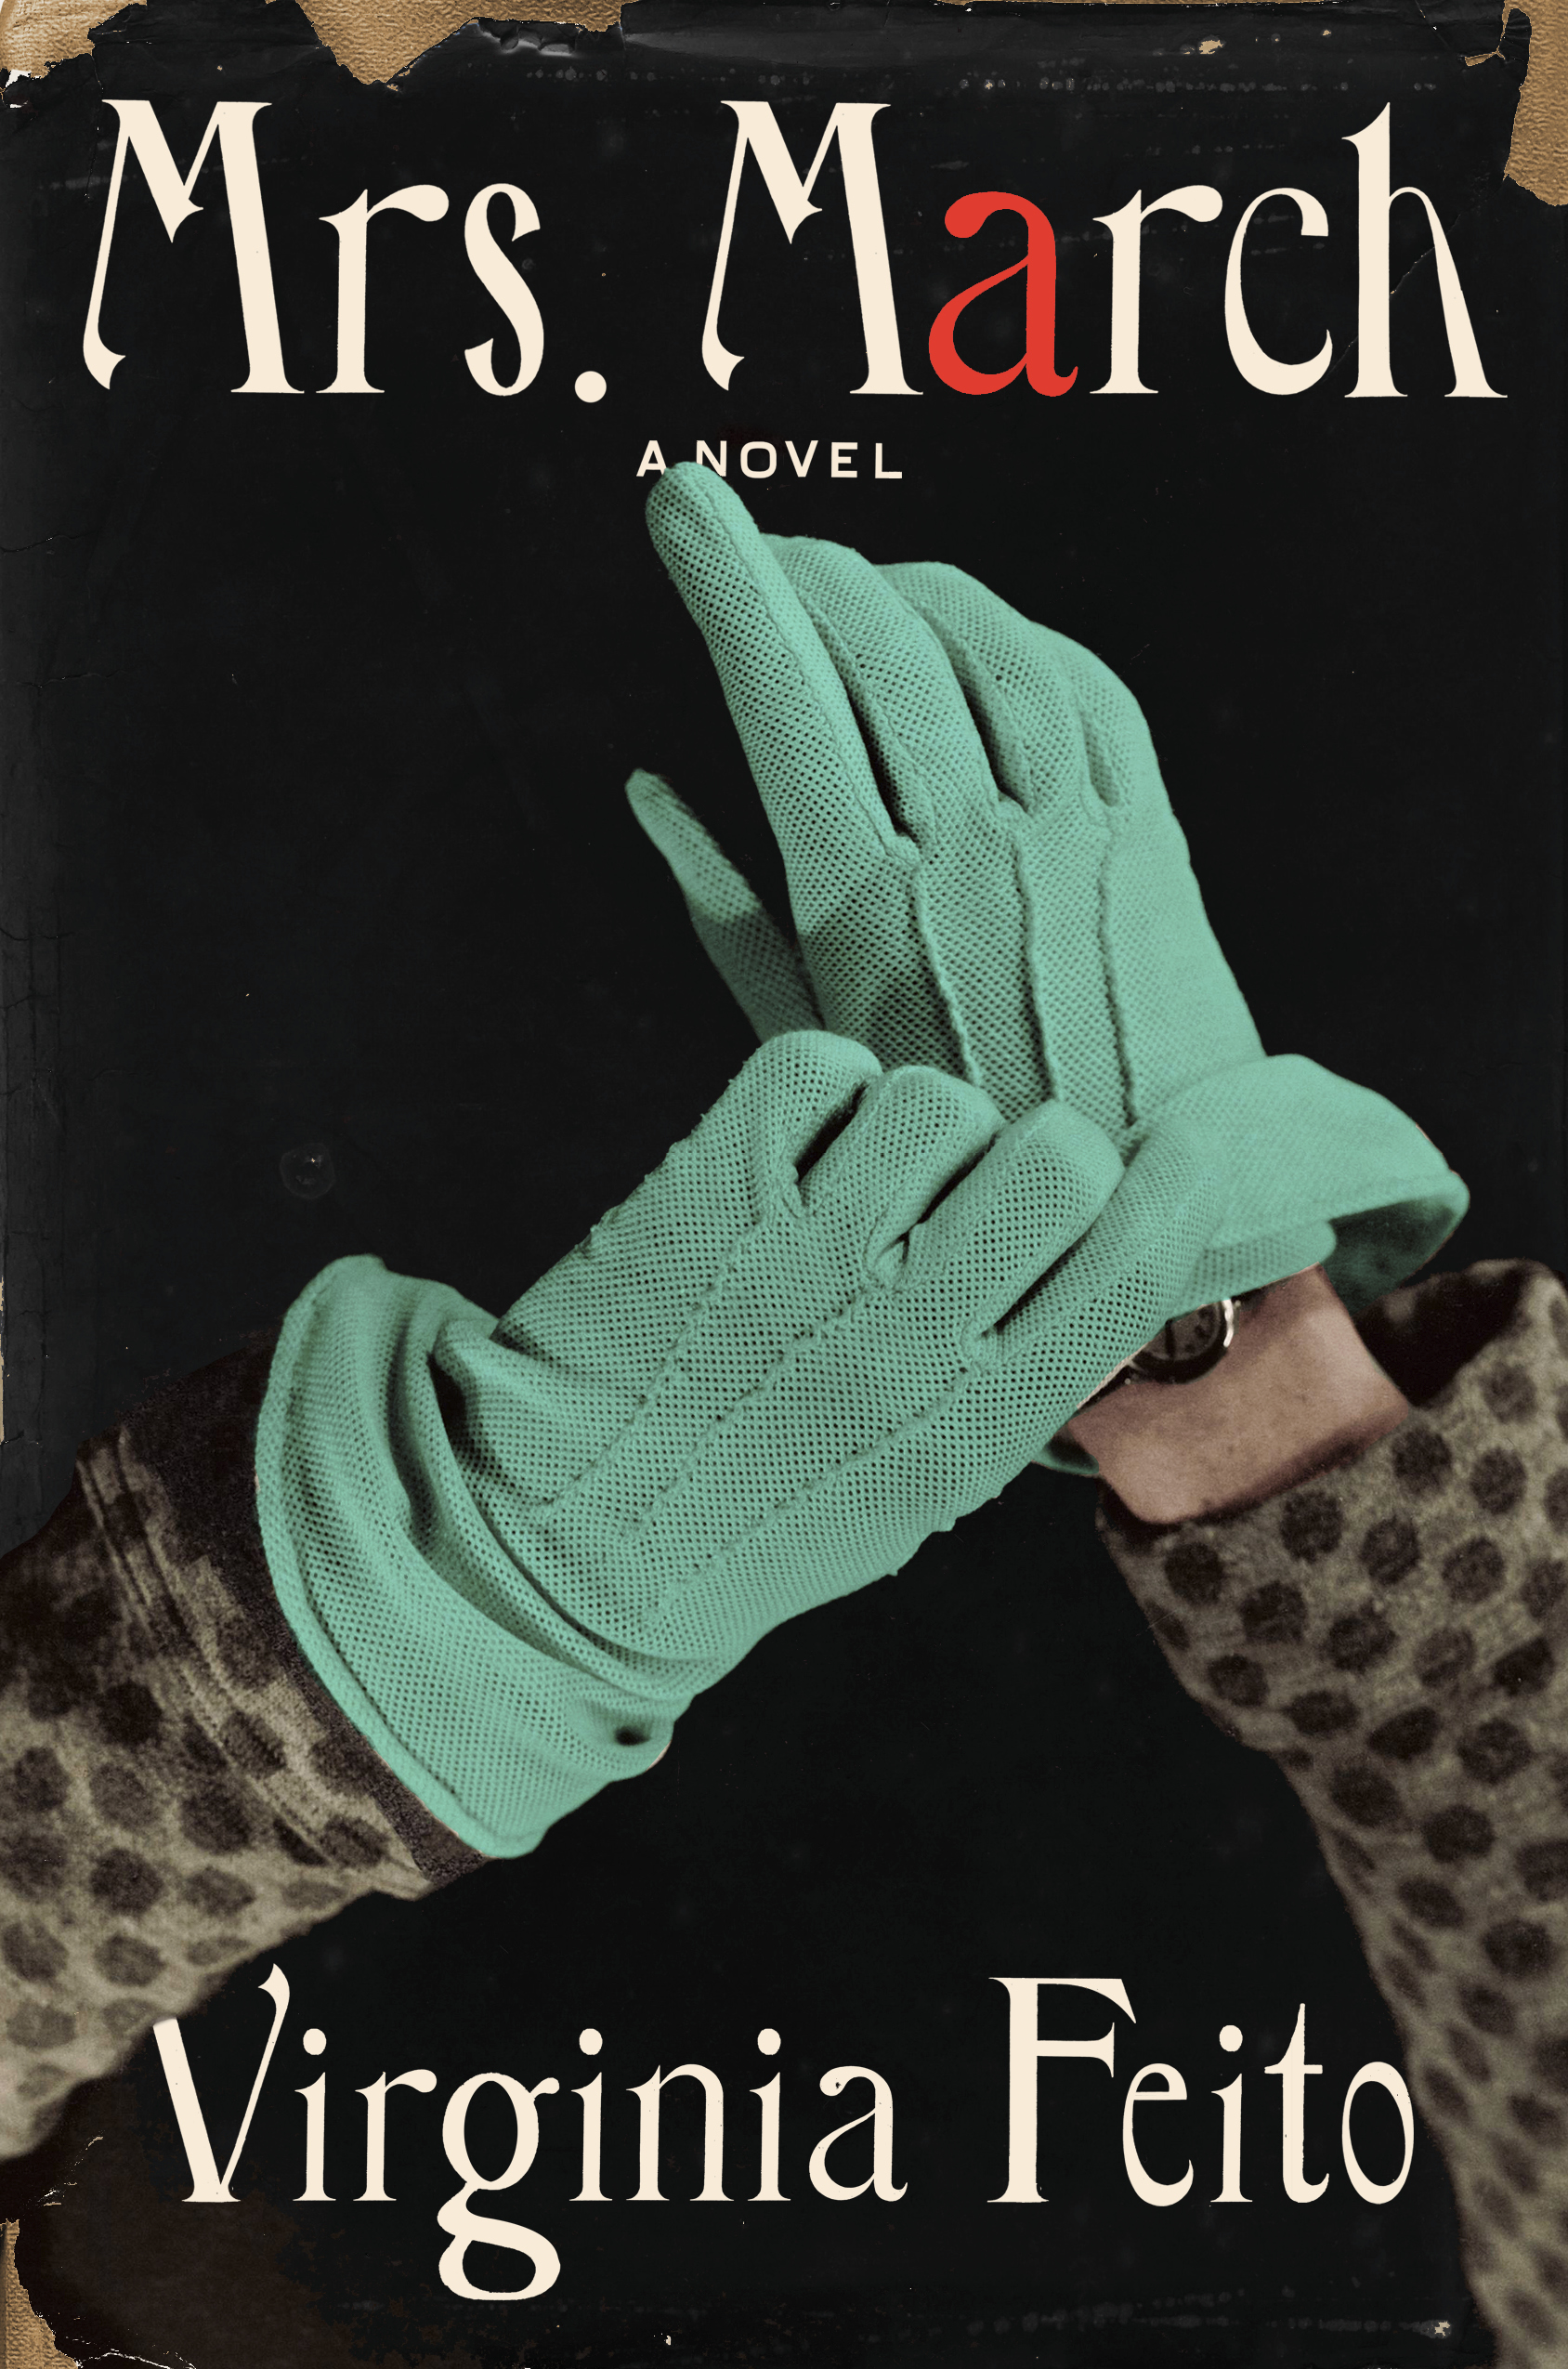 A pair of mint green gloves on a black background